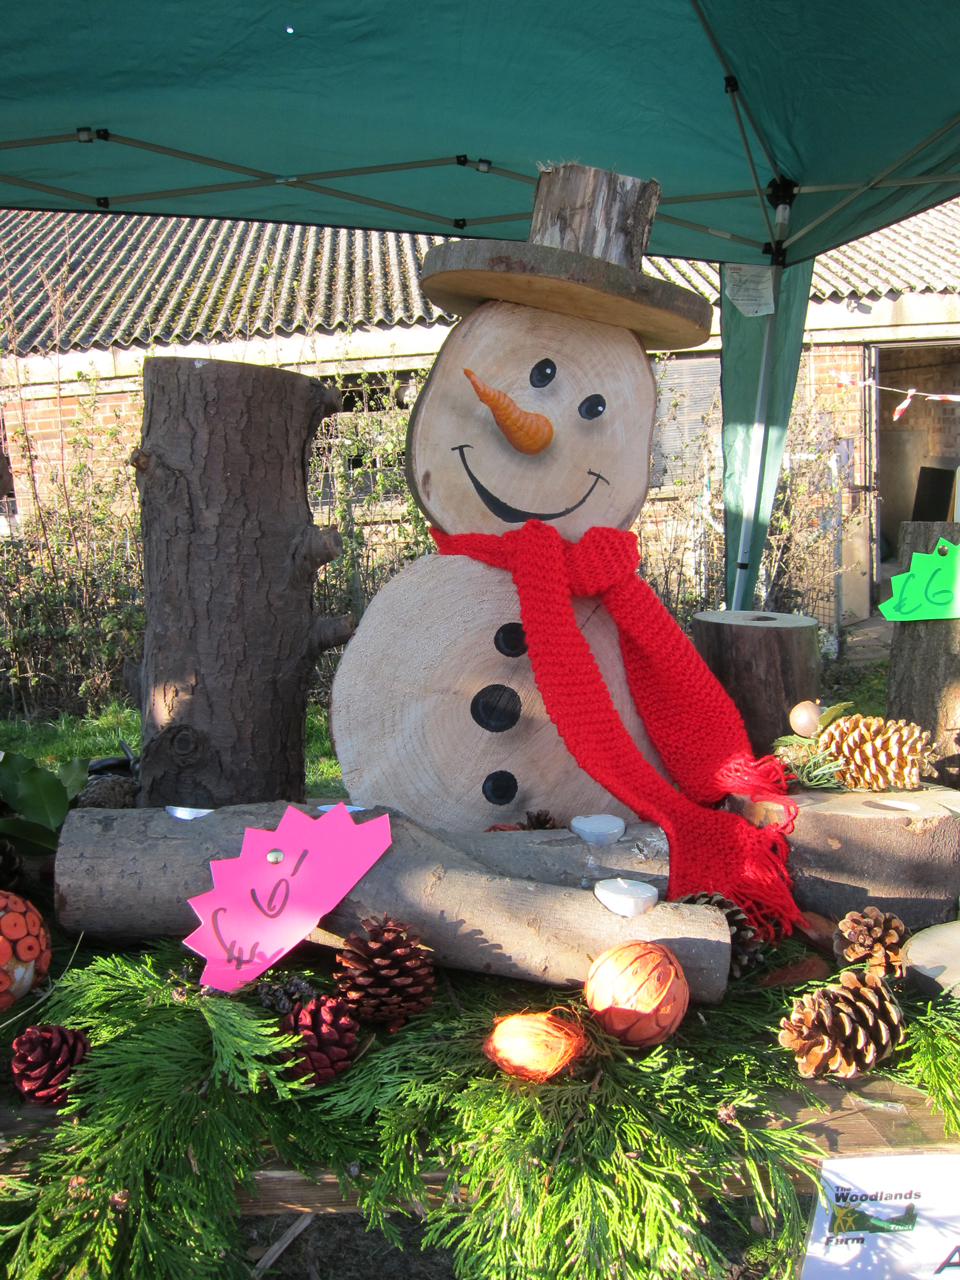 Snowman on the Farm stall